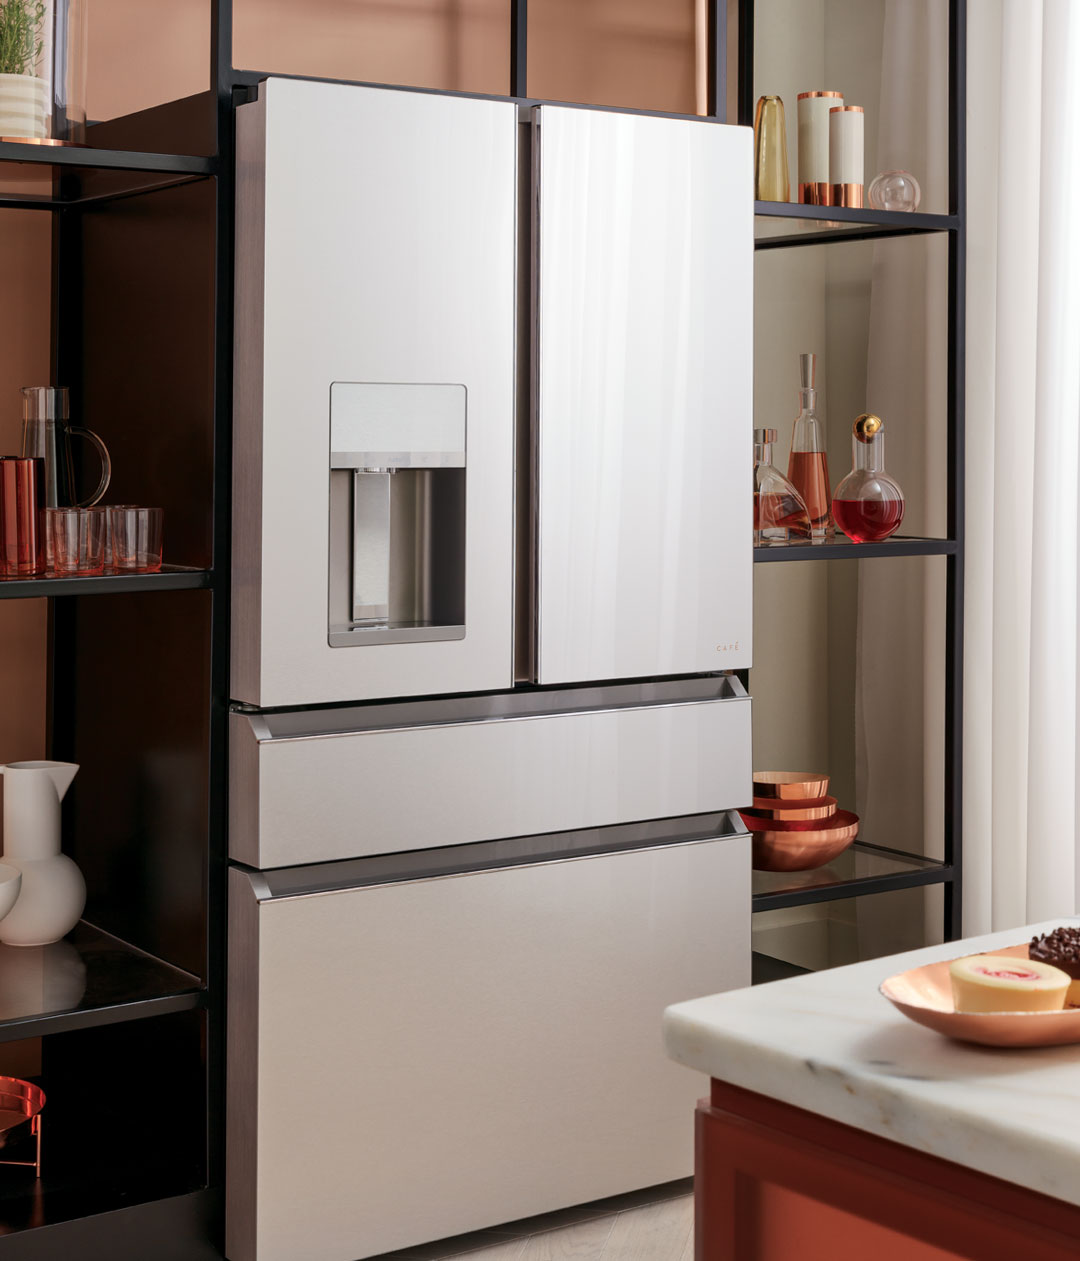 modern glass refrigerator with open shelving